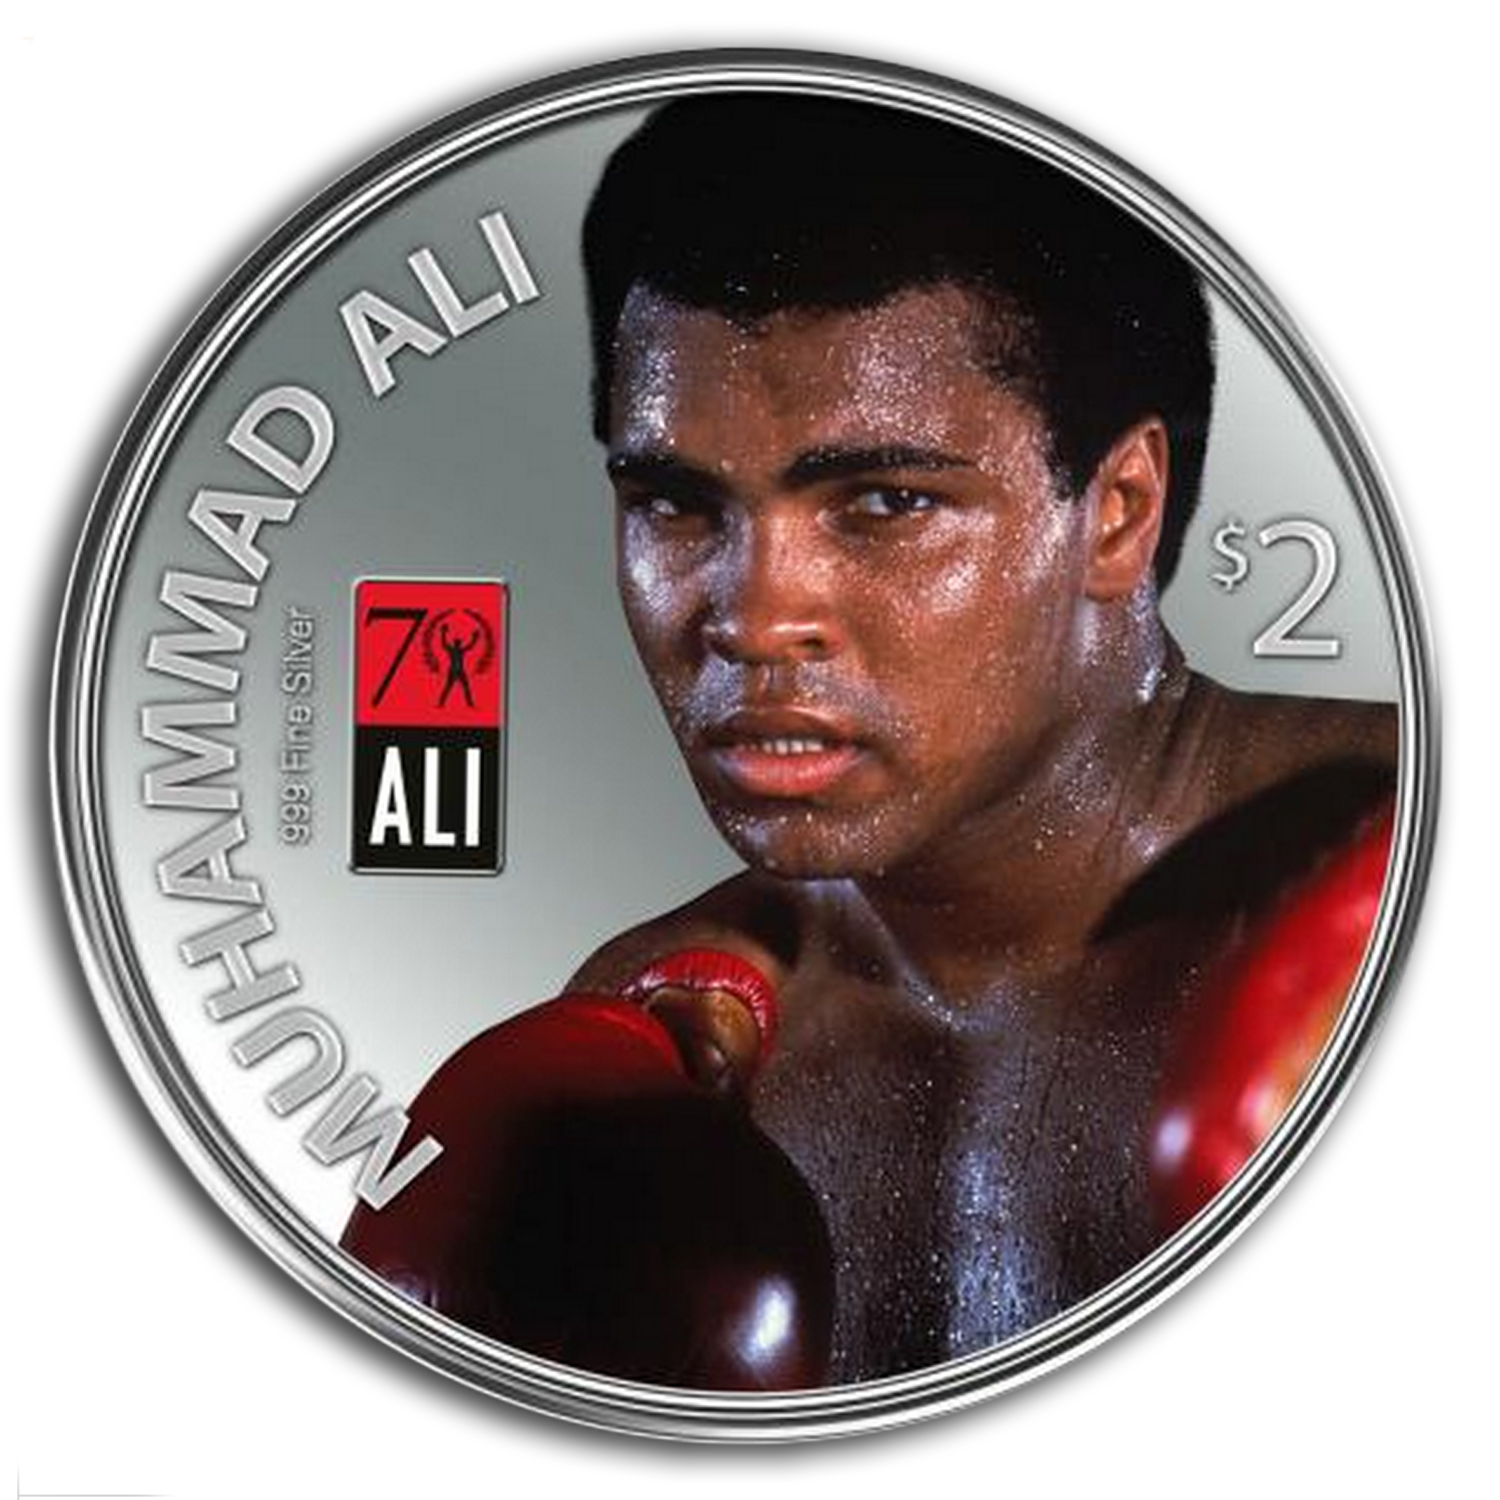 2012 1 oz Silver Fiji $2 - Muhammad Ali Coin in Glove Display